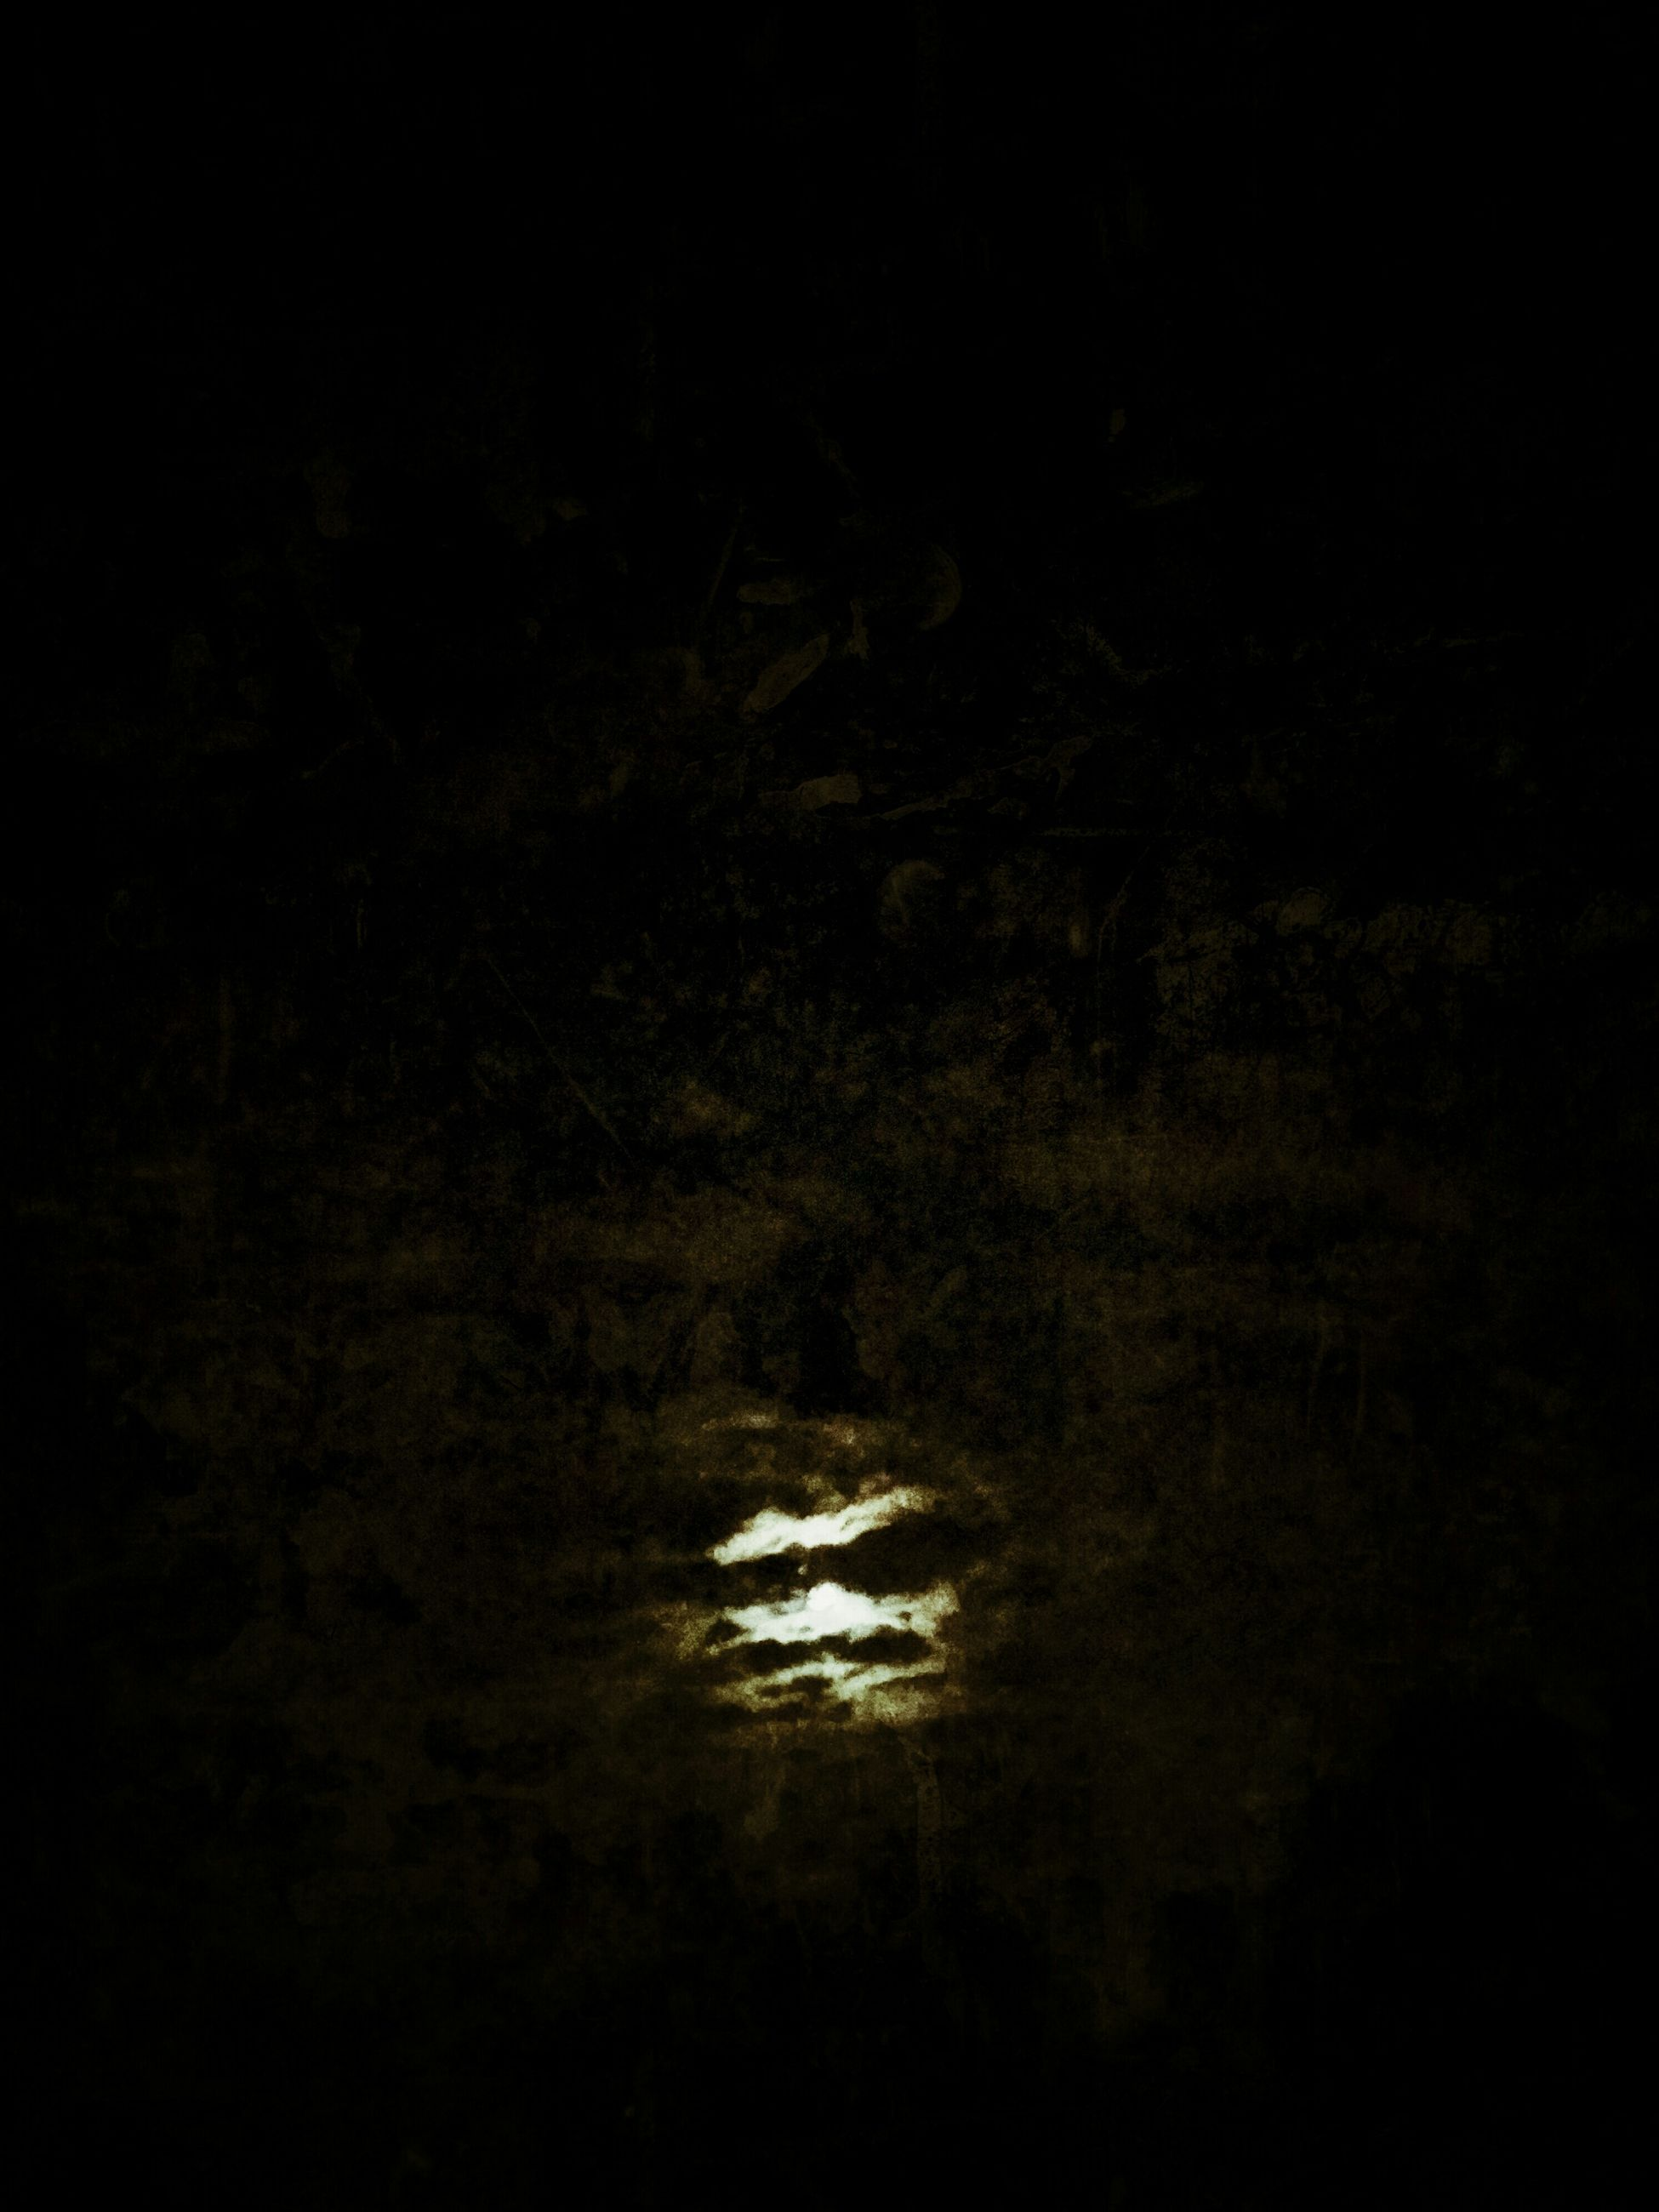 night, copy space, dark, tranquility, nature, black background, no people, beauty in nature, outdoors, tranquil scene, clear sky, high angle view, backgrounds, studio shot, scenics, mystery, light - natural phenomenon, vignette, idyllic